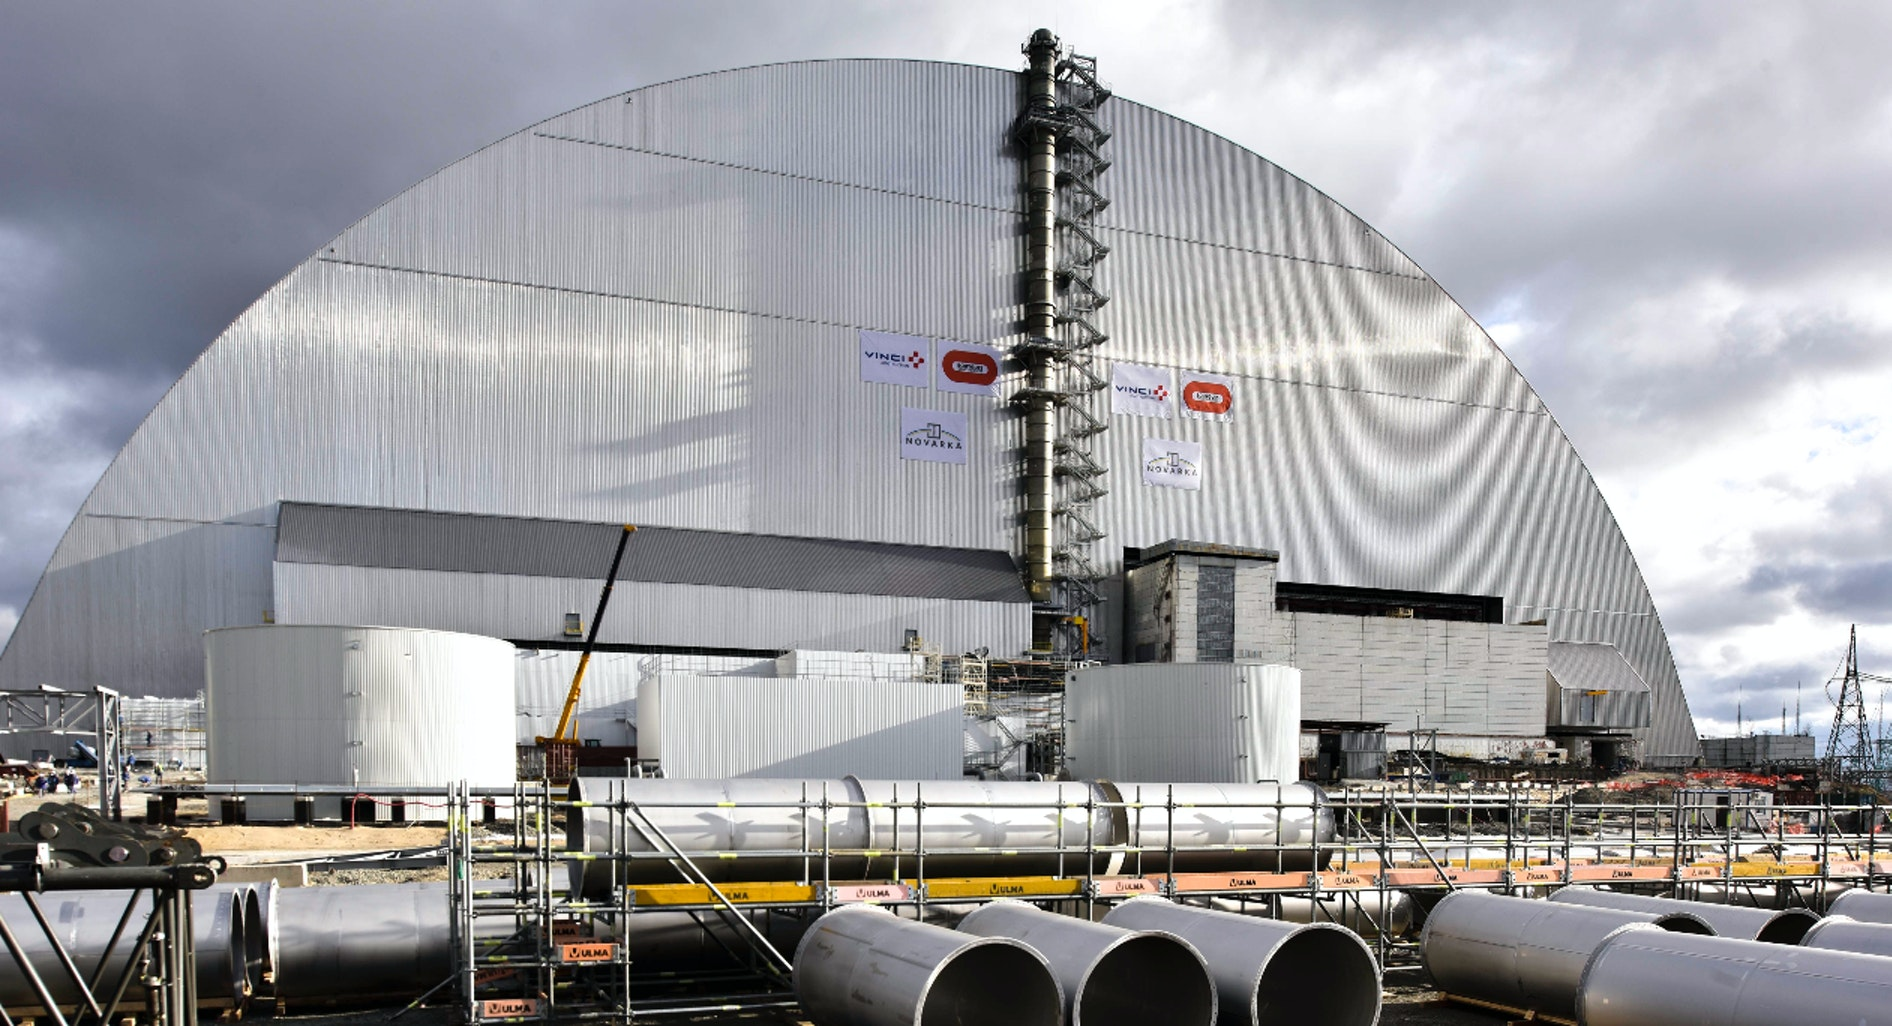 This massive sliding arch looks like an airplane hangar, but it covers a nuclear disaster.